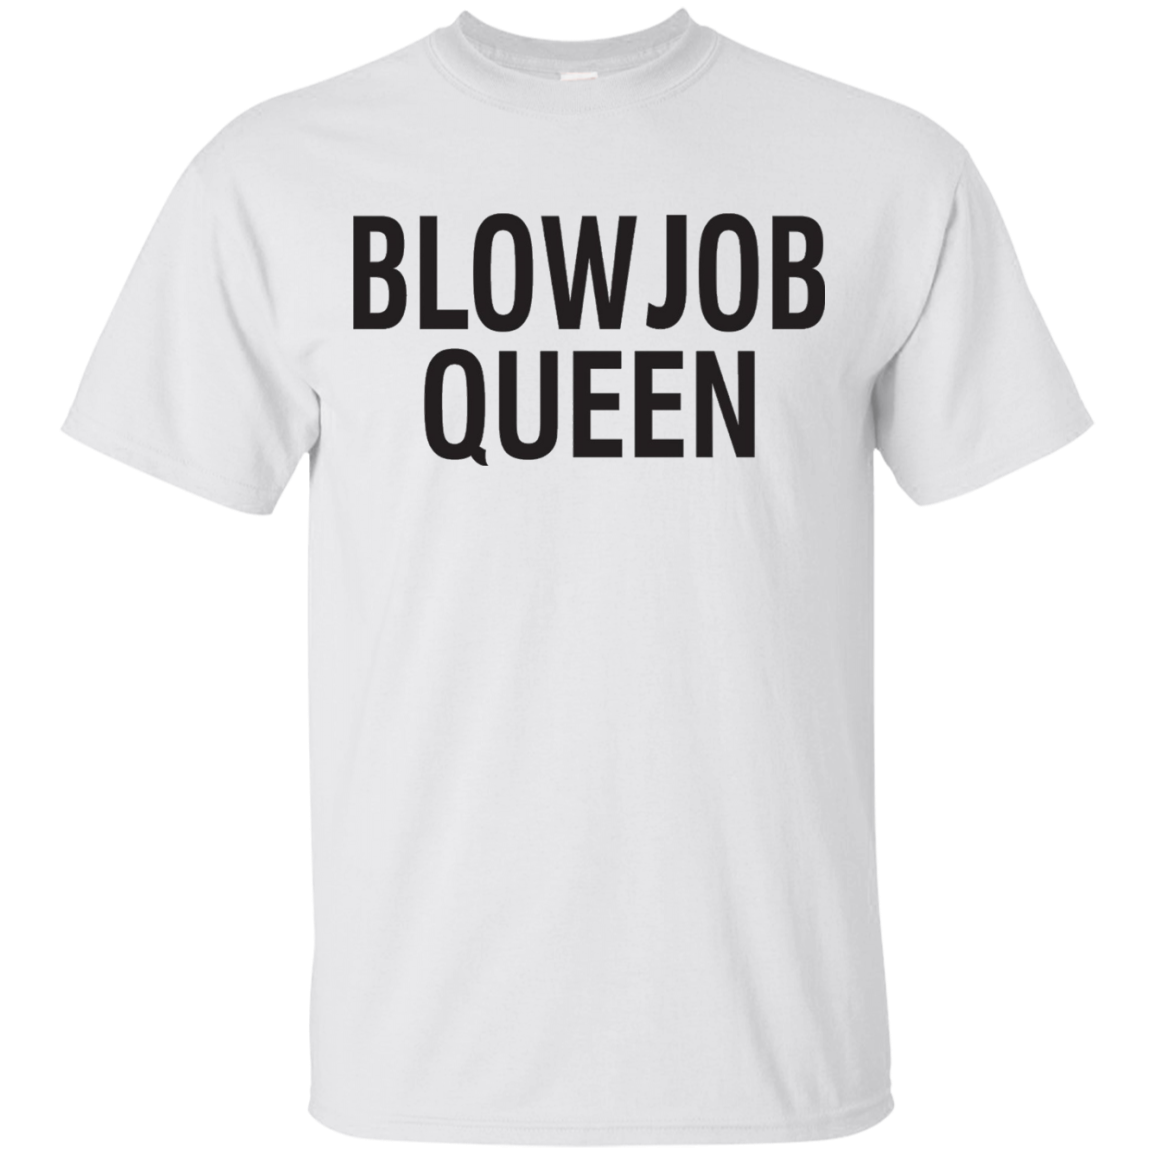 Blowjob Queen T Shirt